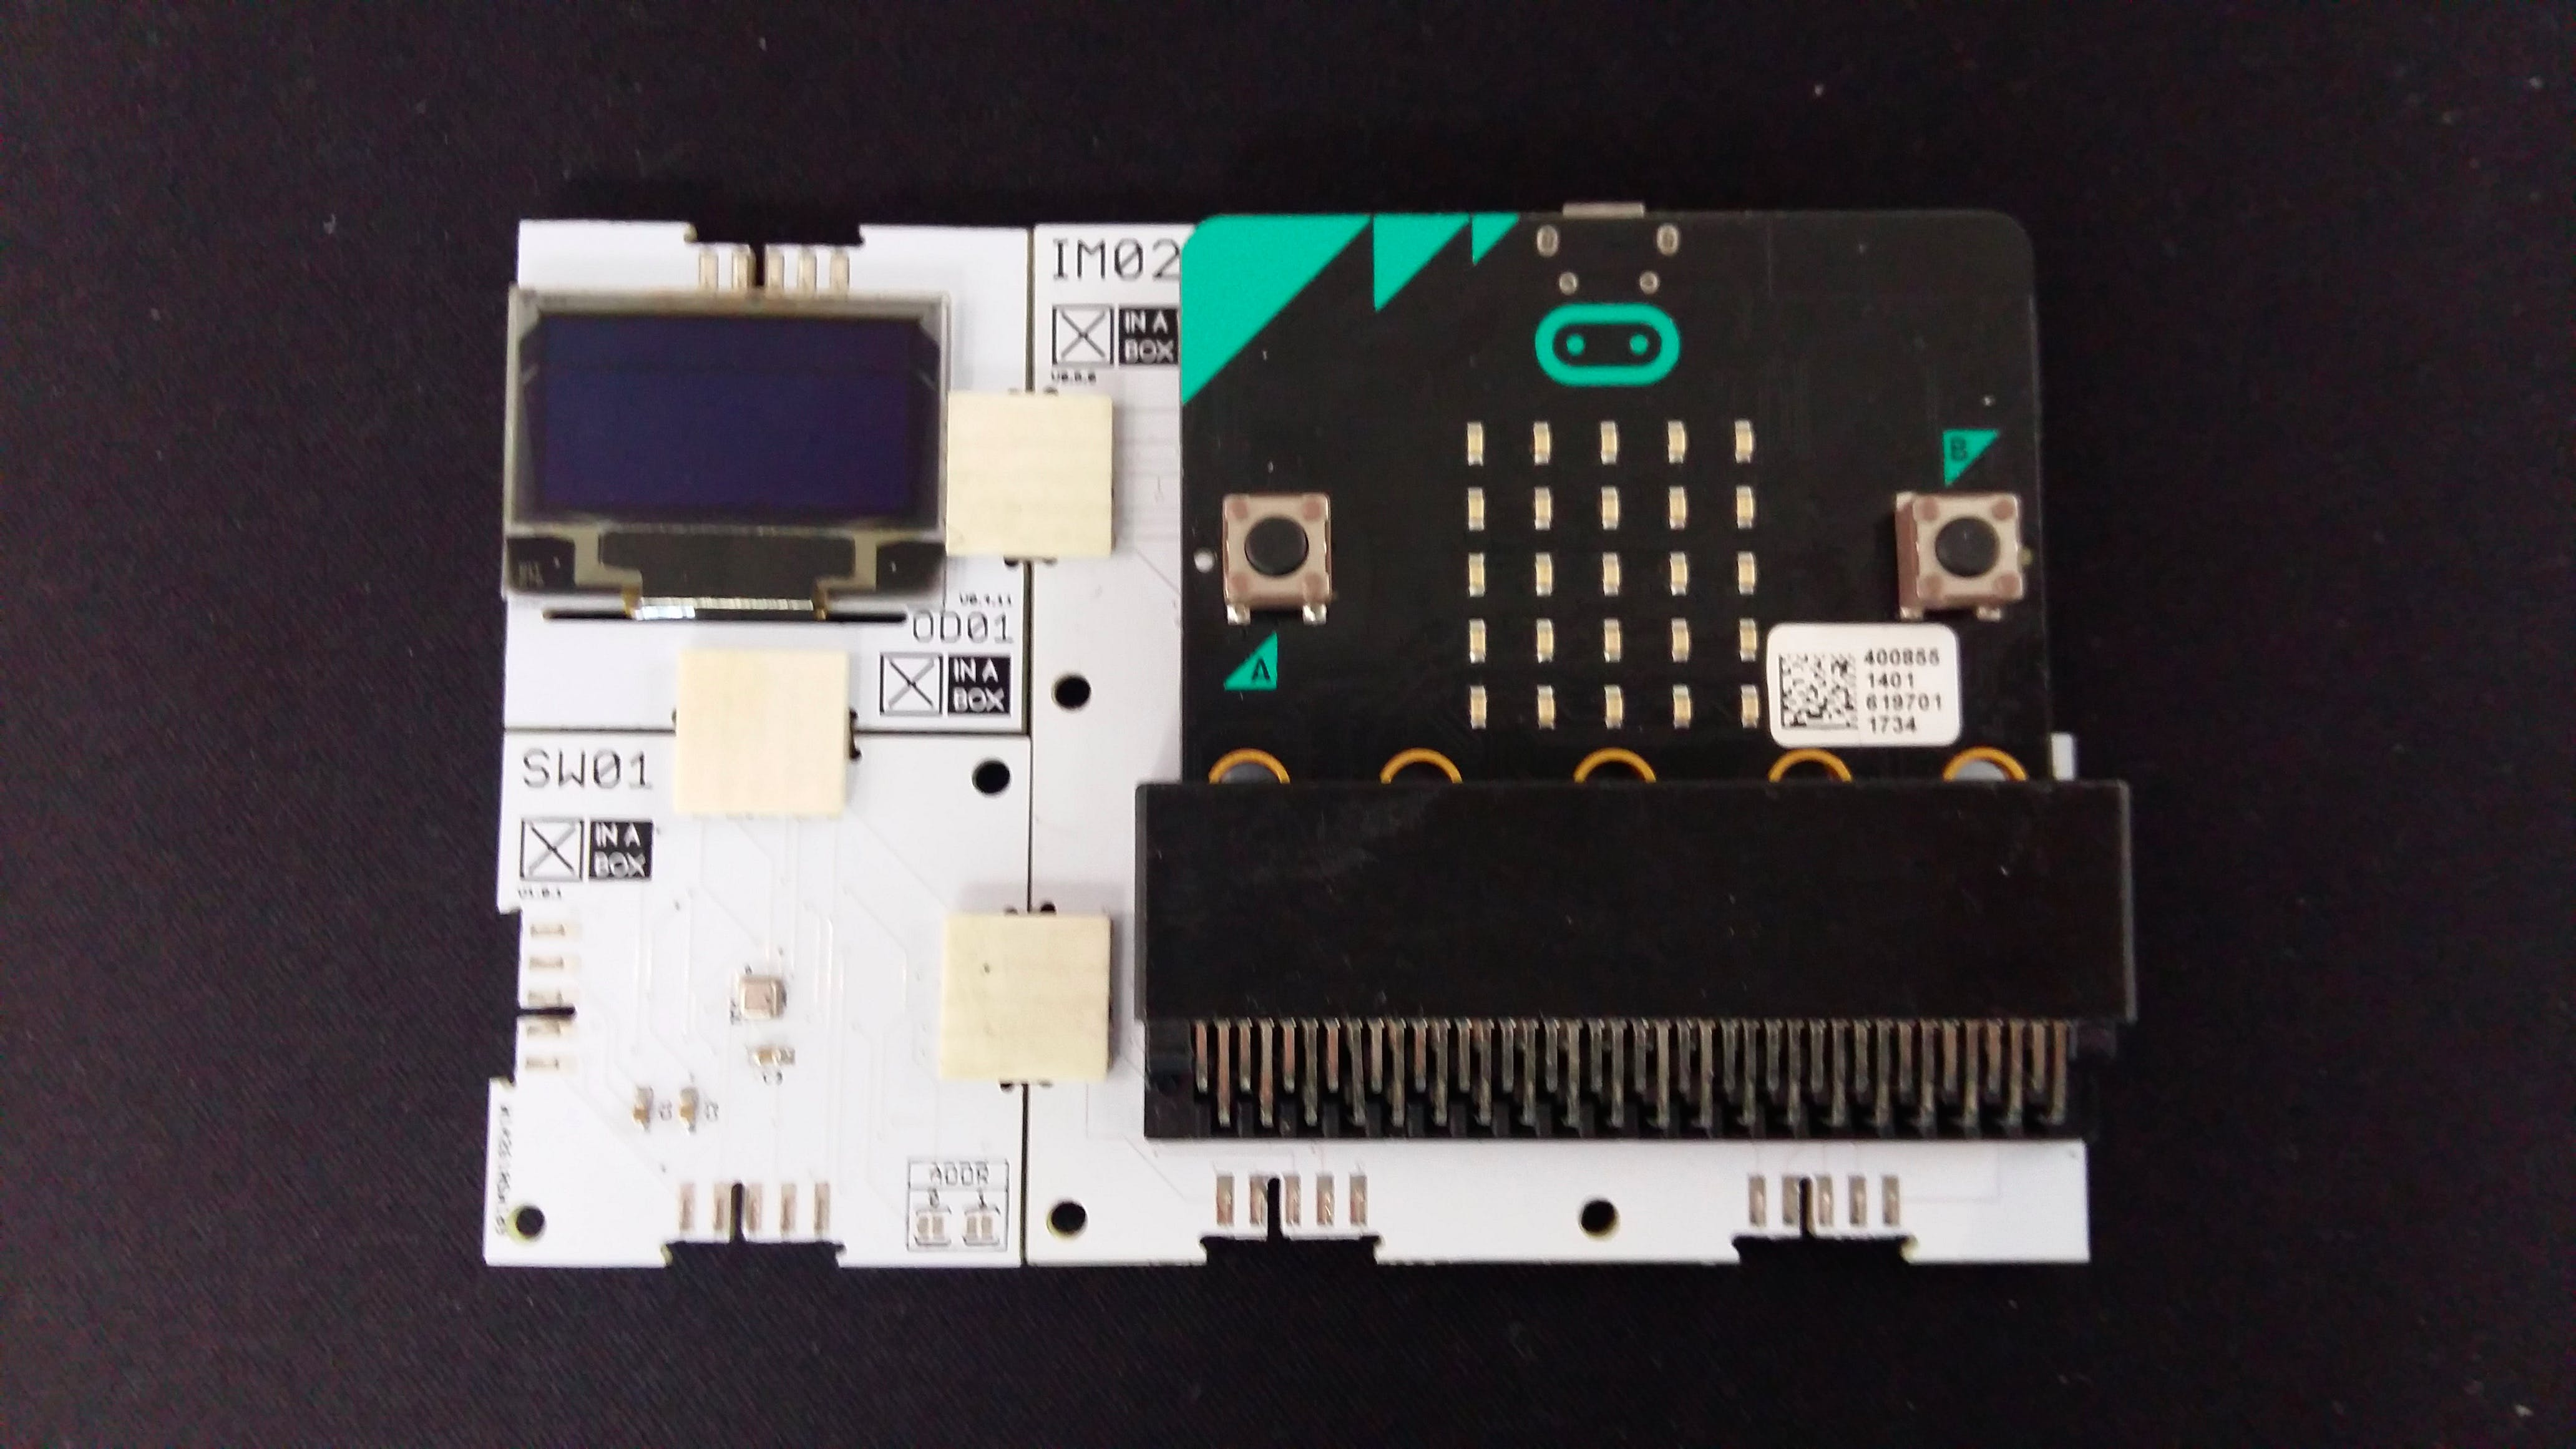 Figure 3:Connected IM02, SW01, OD01 and Micro:bit